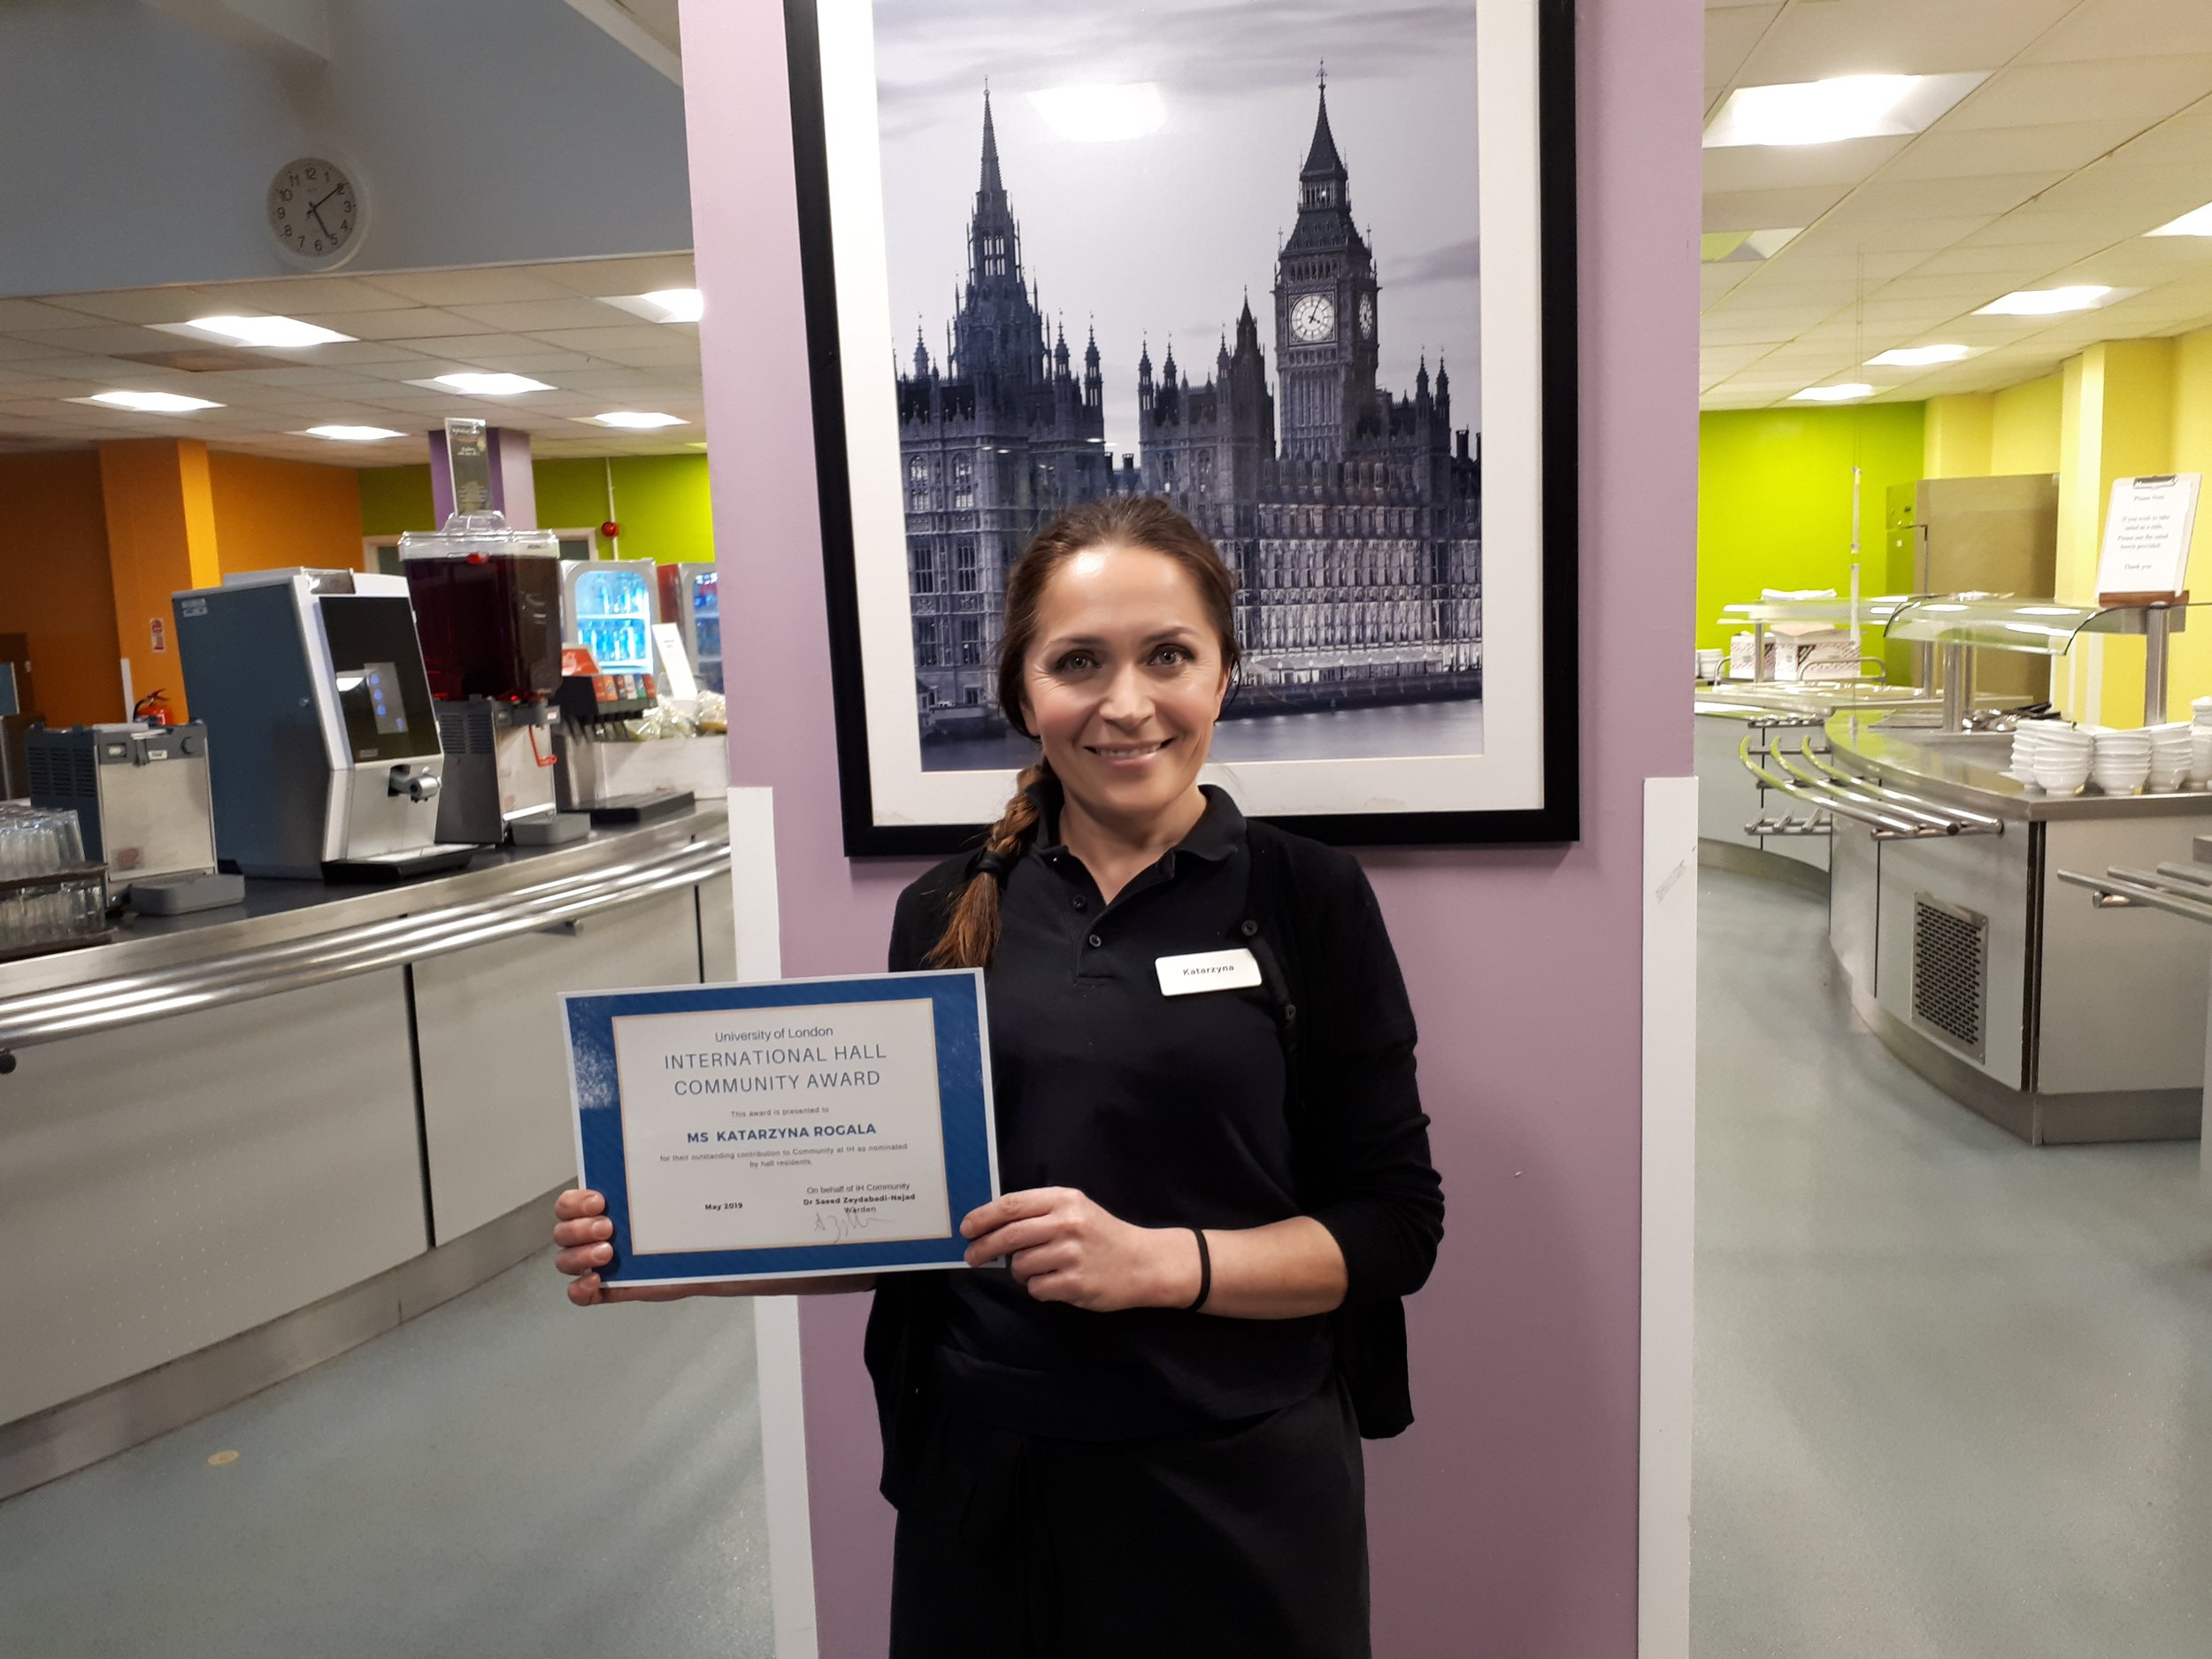 This month's Community Award winner is Katarzyna, one of our weekend catering staff.